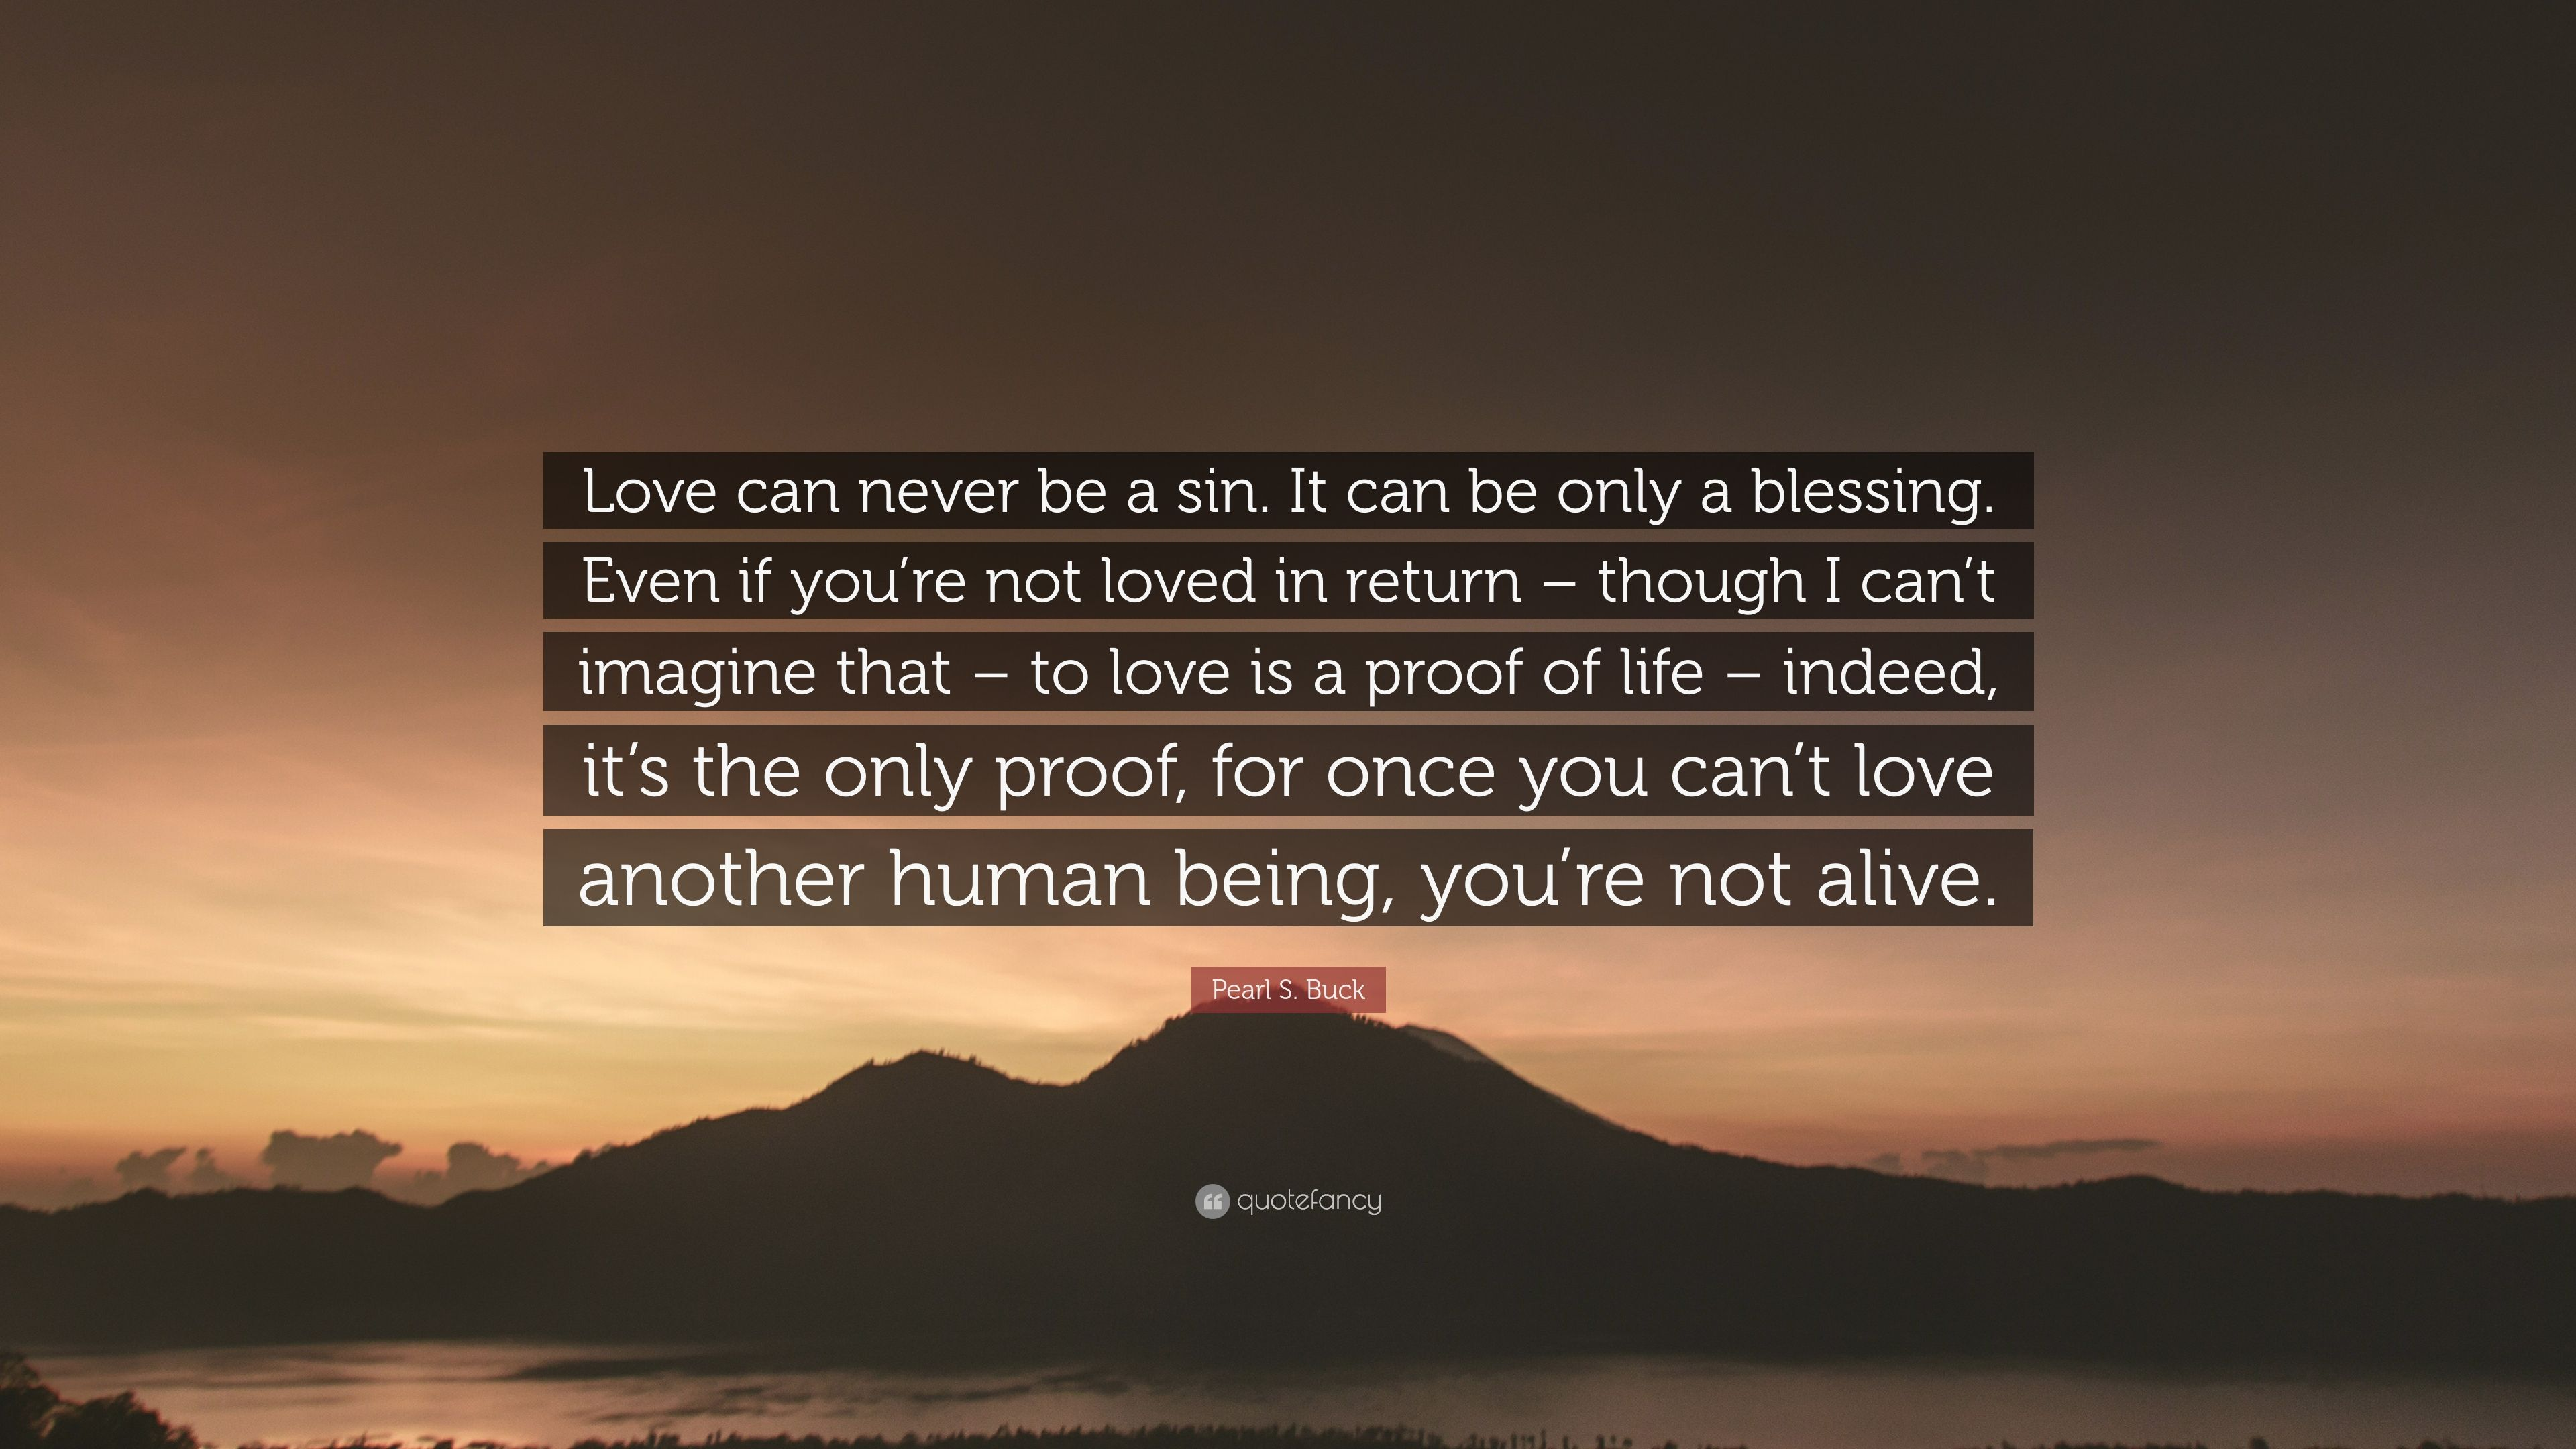 Pearl S Buck Quote Love Can Never Be A Sin It Can Be Only A